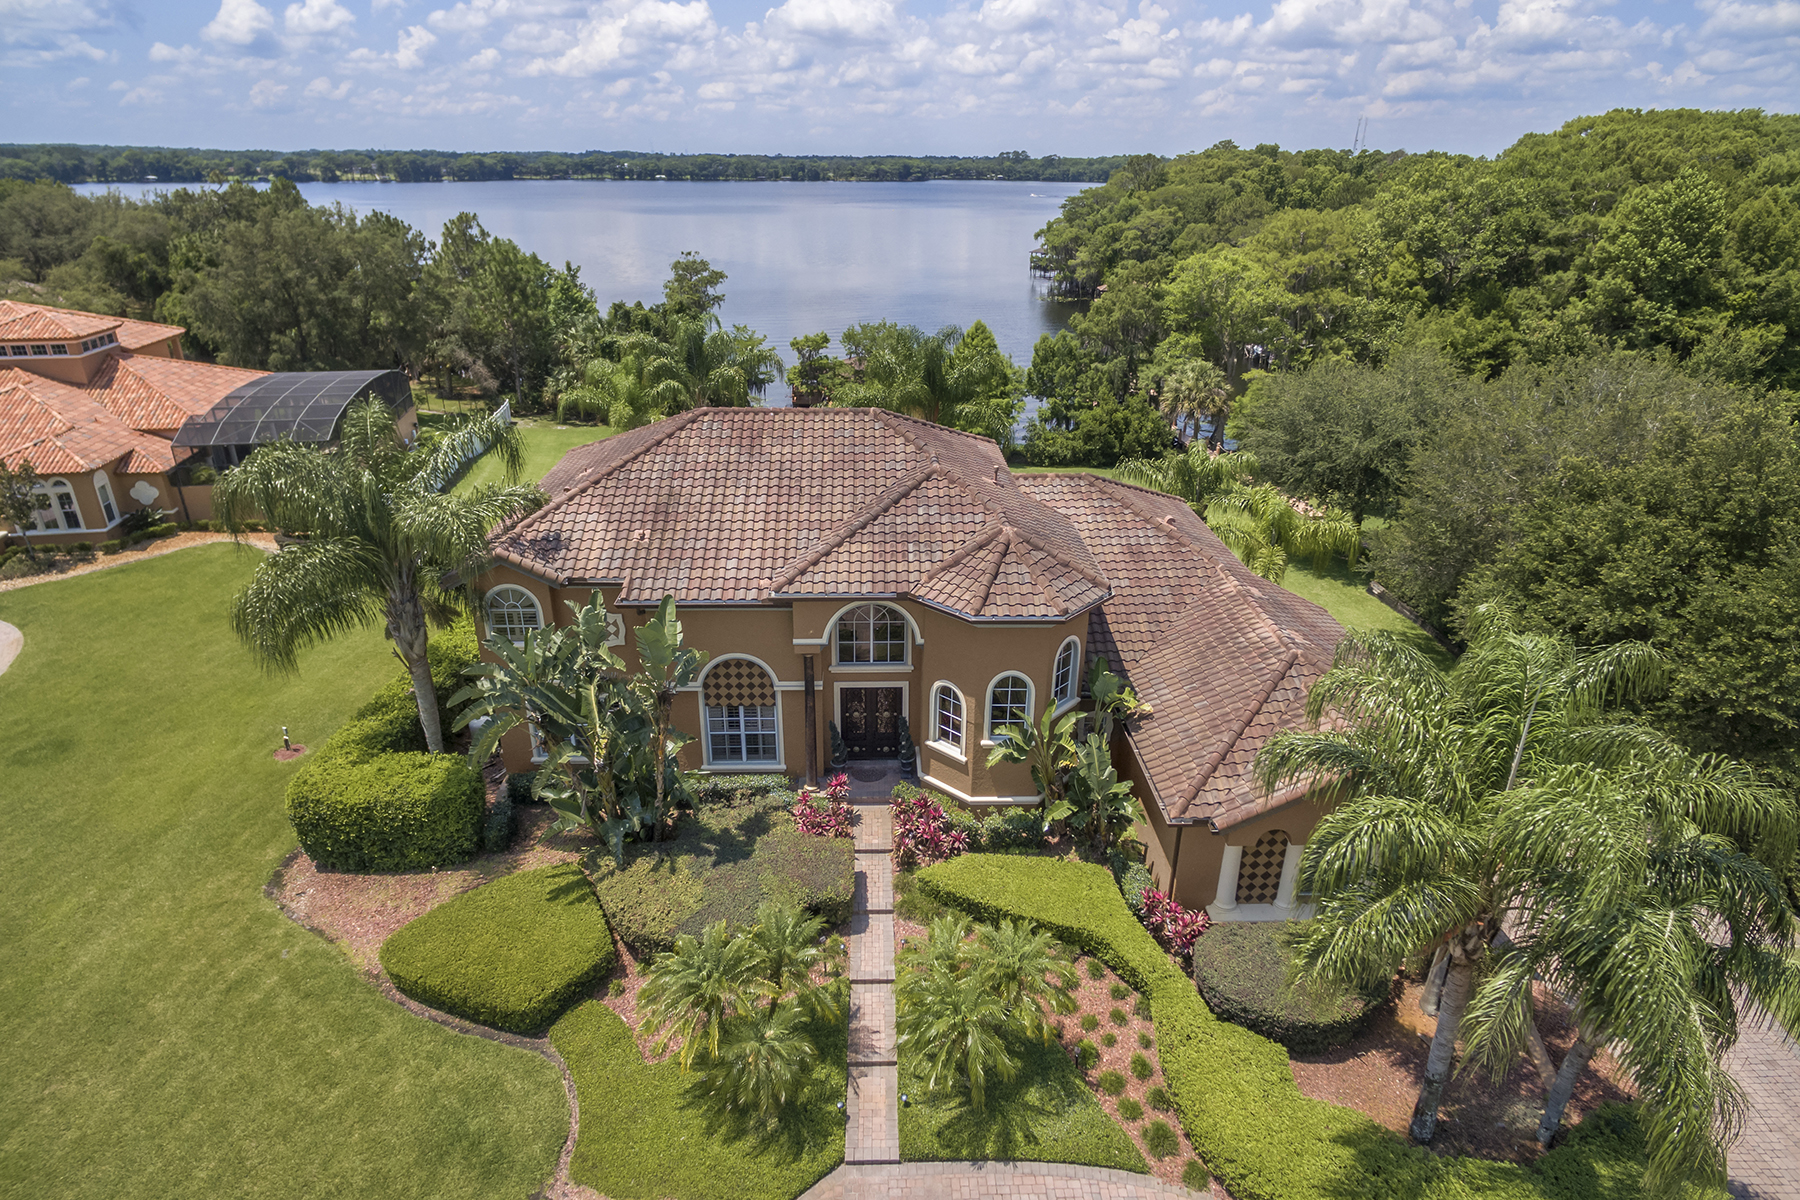 Single Family Home for Sale at Chuluota, Florida 917 Mills Estate Pl Chuluota, Florida, 32766 United States